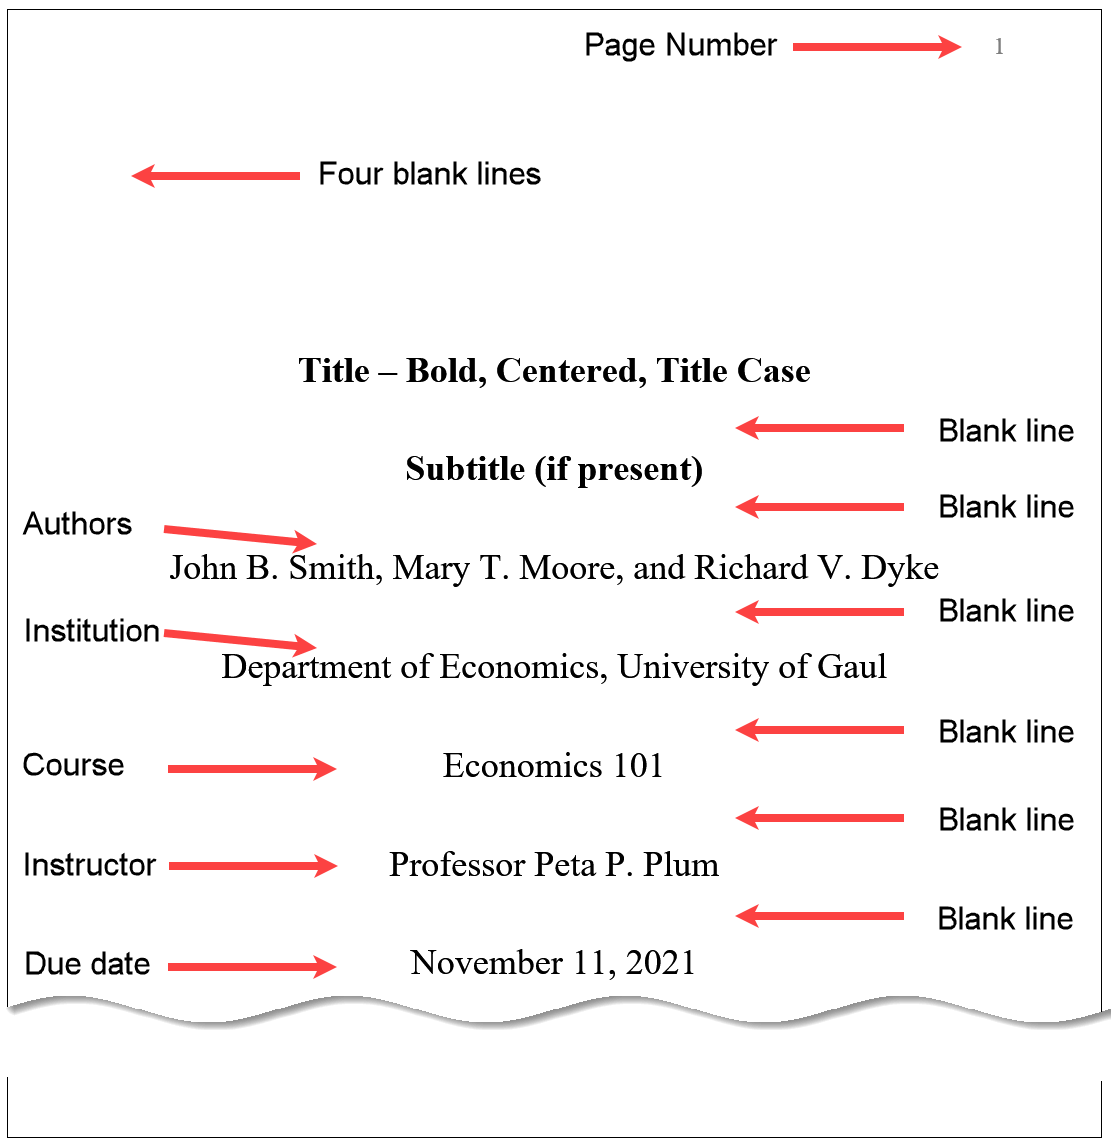 Title page in APA format for a student paper